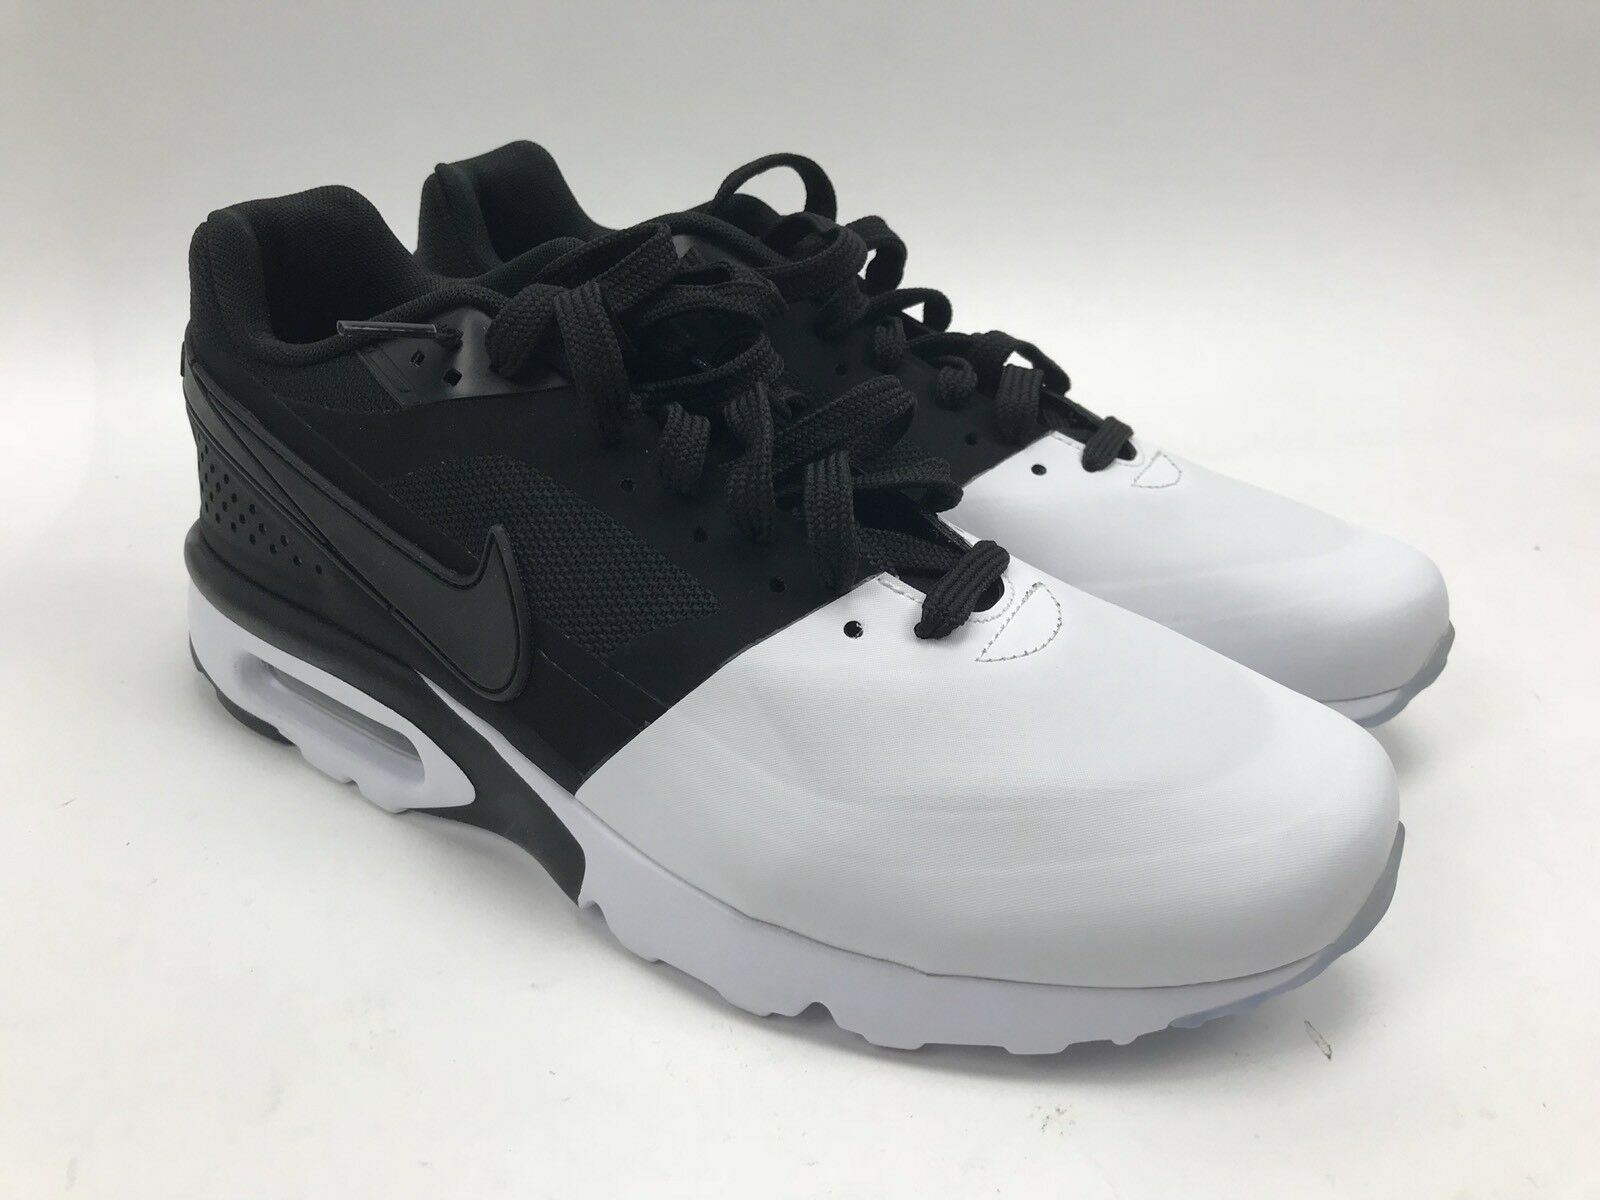 Nike Air Max BW Ultra SE Running Shoes Mens Size 10 Black White 844967-101